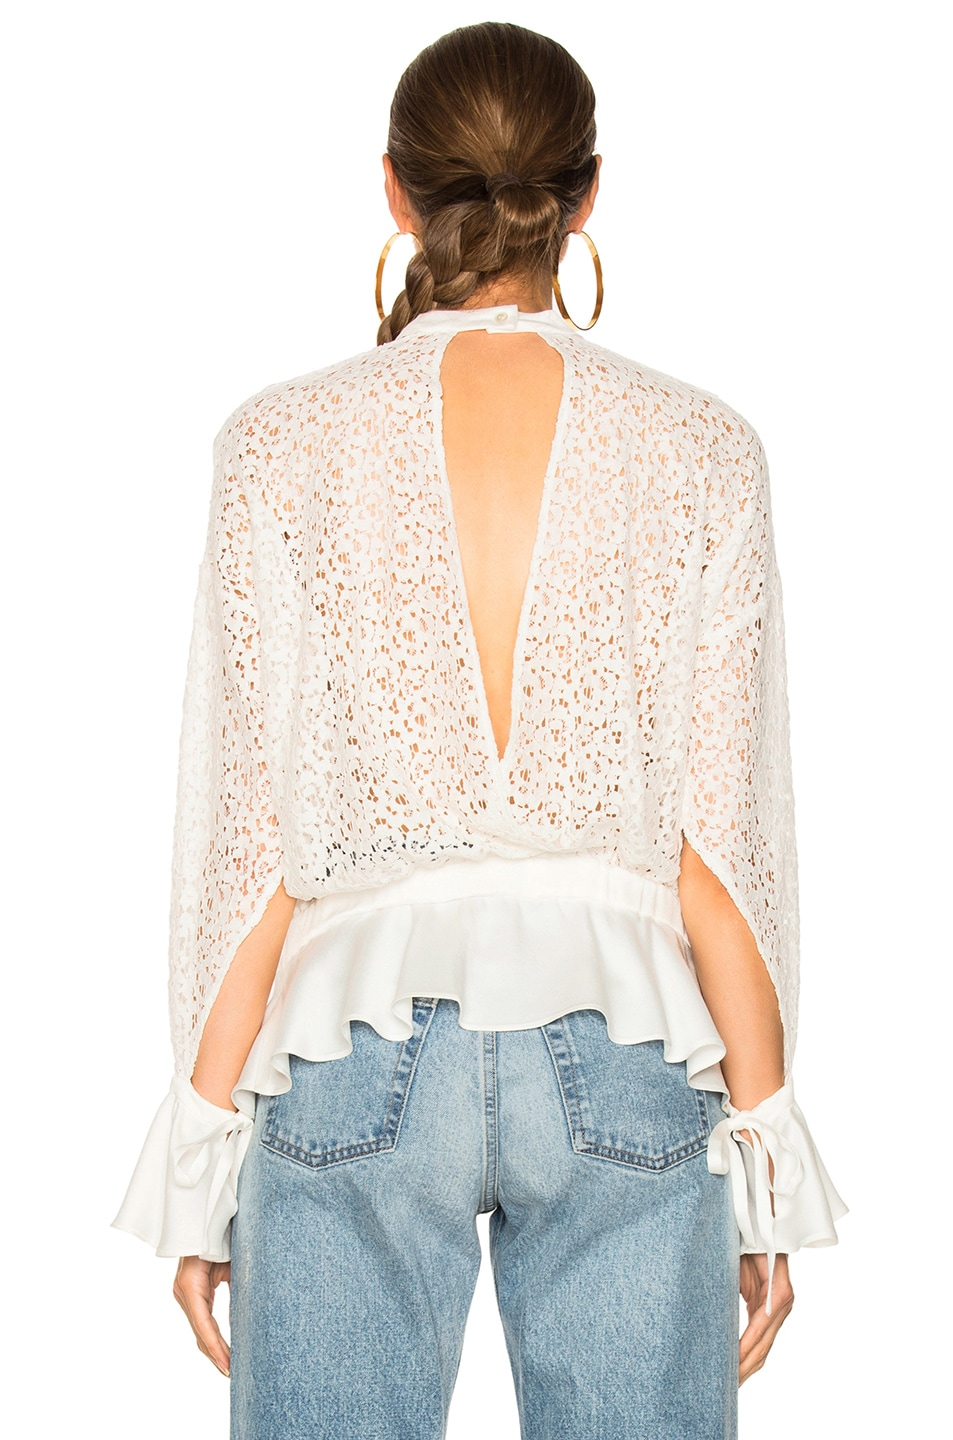 Image 4 of Marissa Webb Sullivan Lace Top in Lace White Combo